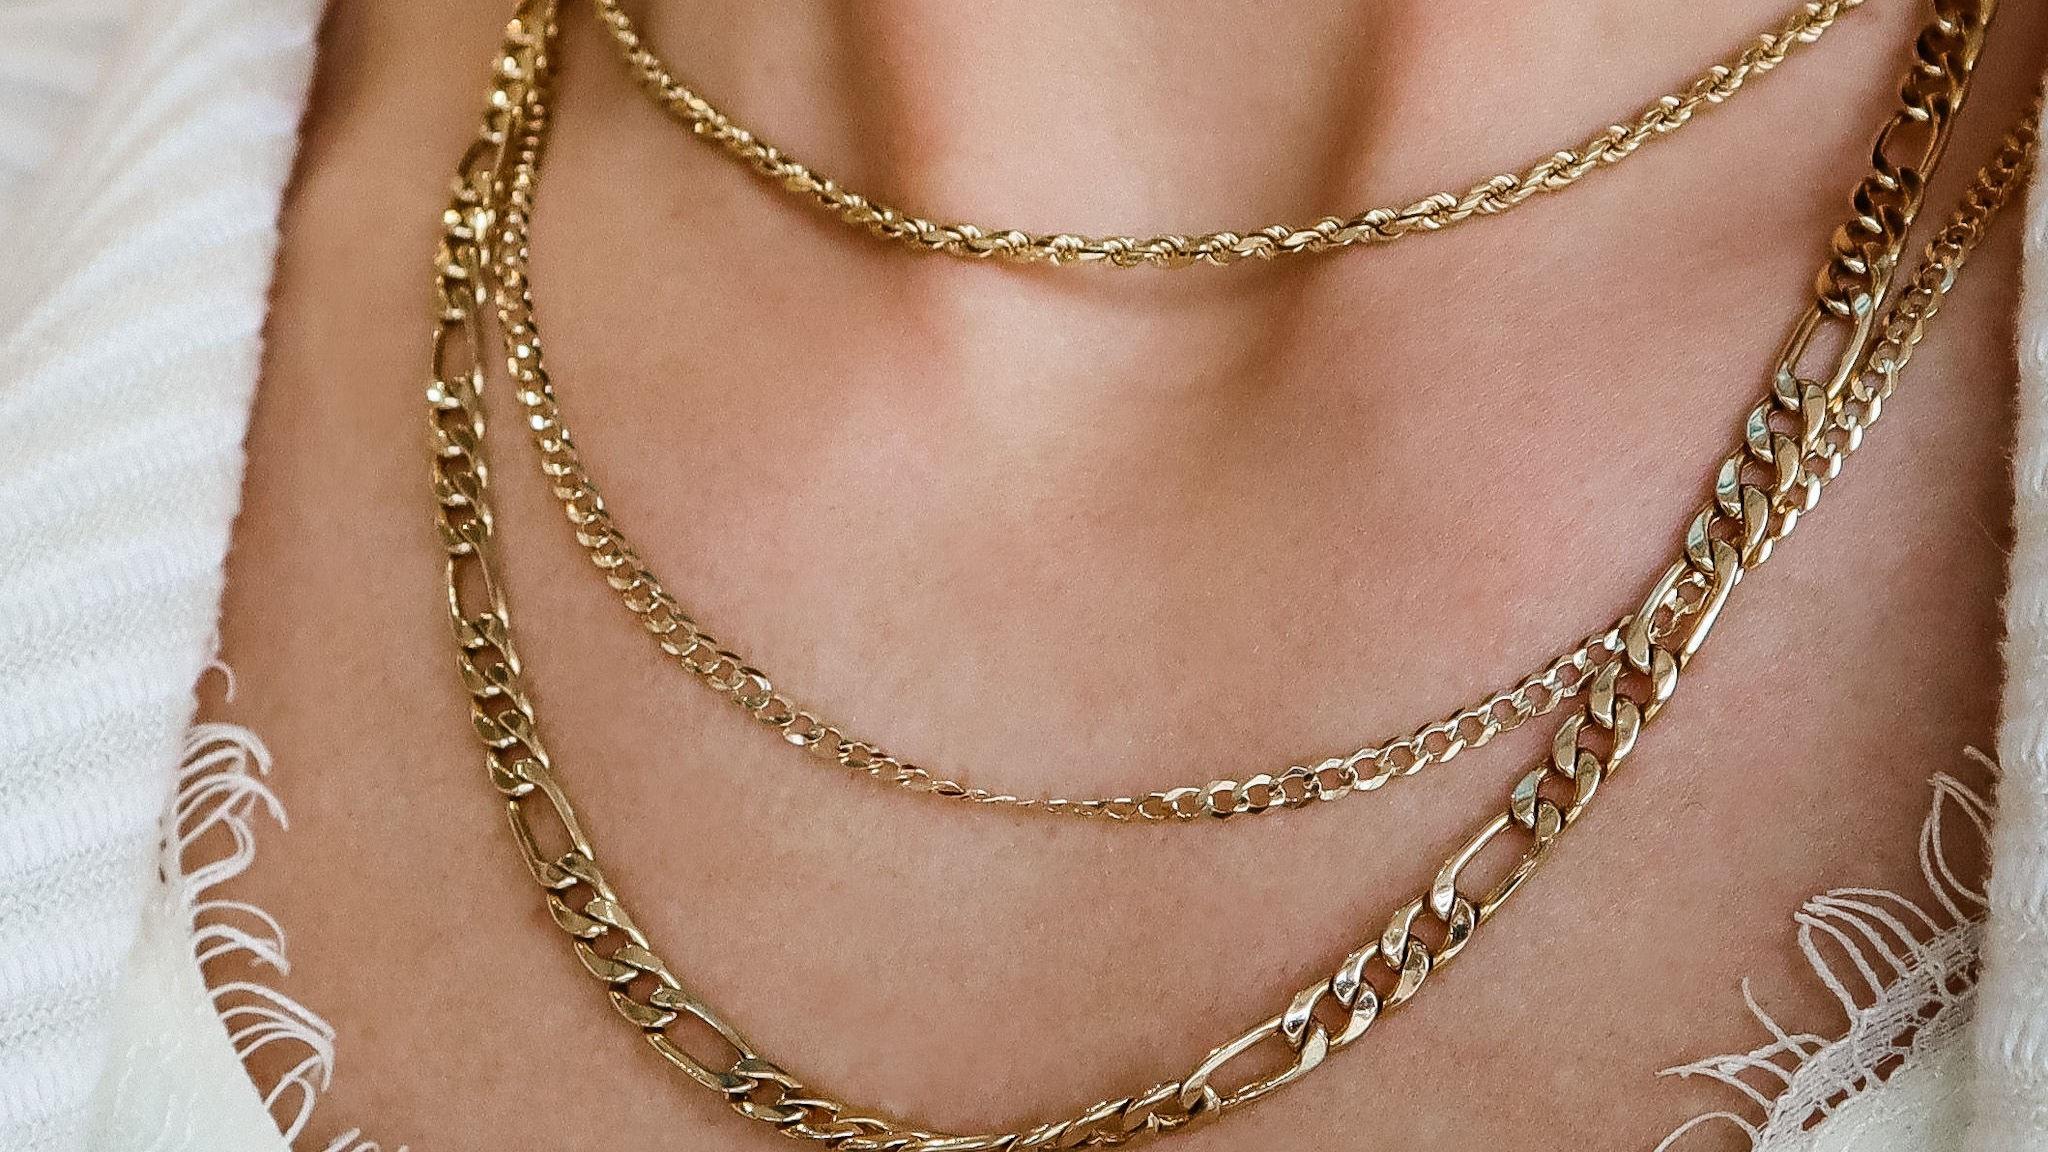 Layered Necklace Trend